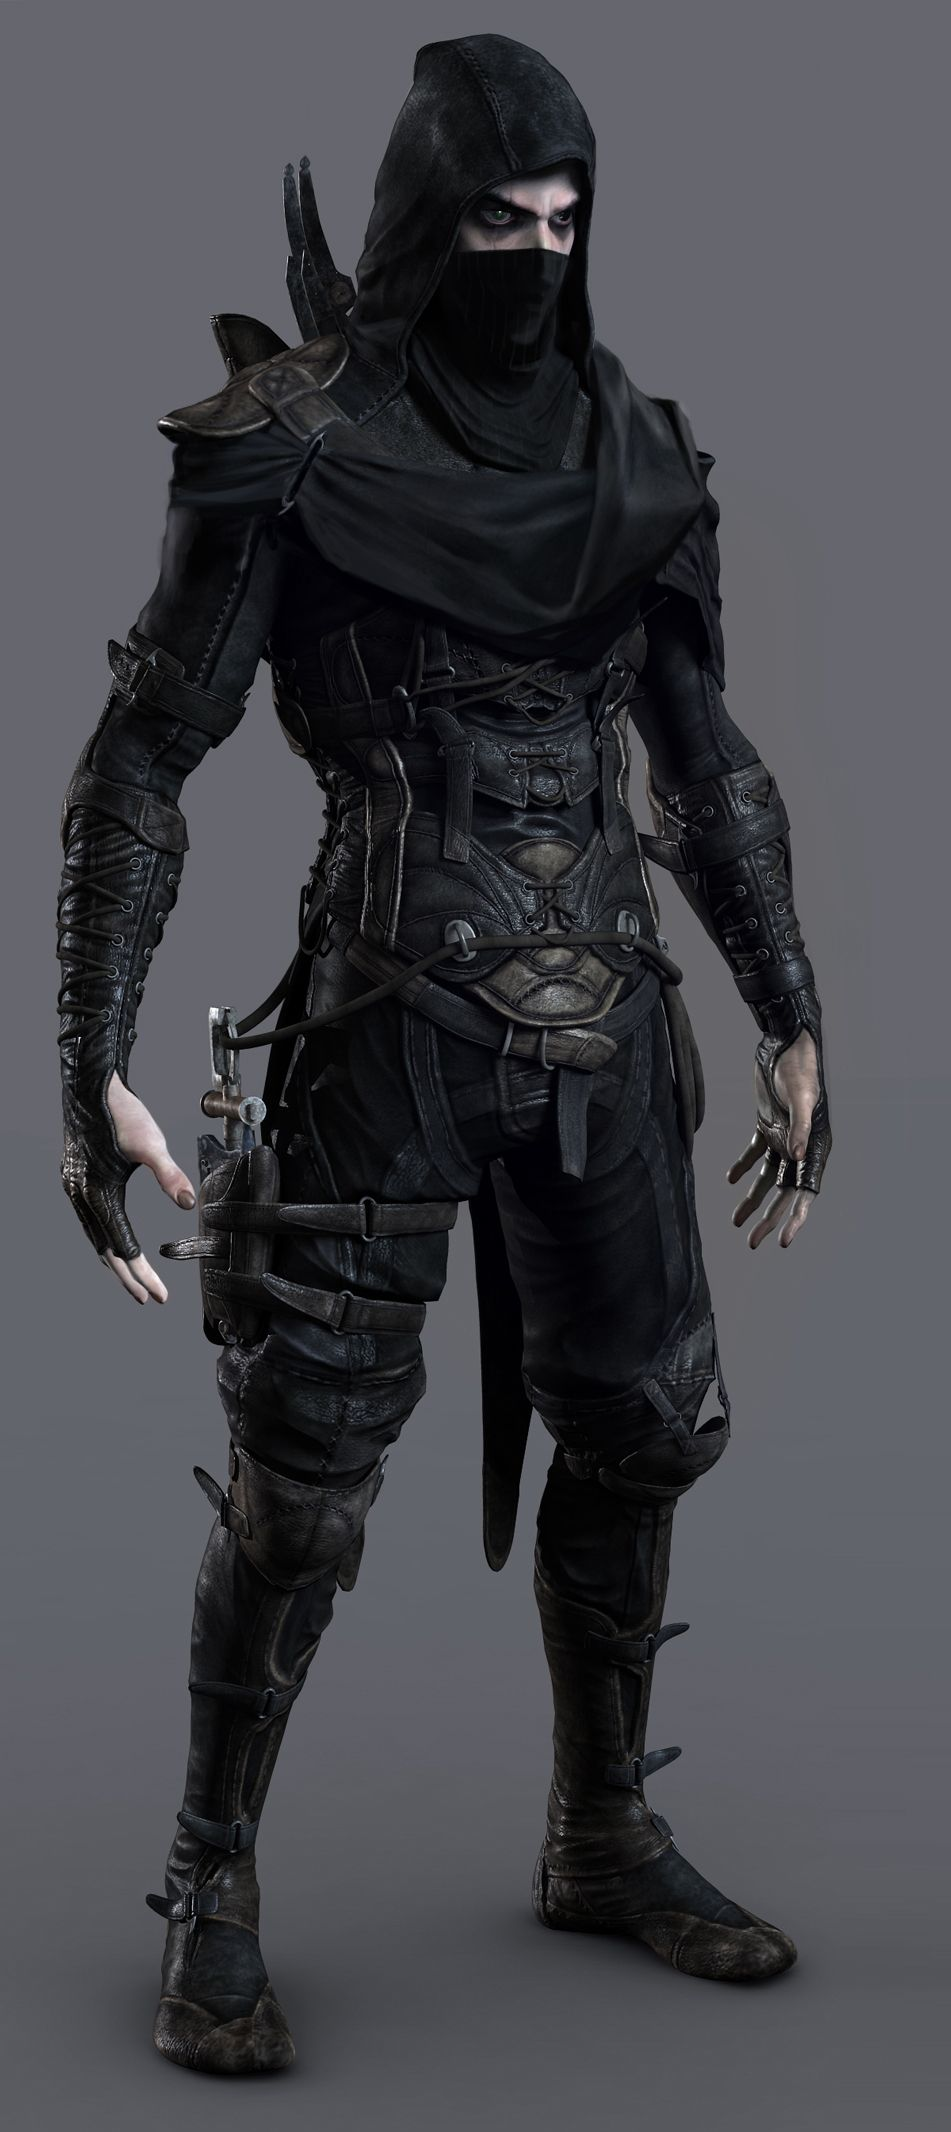 Character Design Description : Thief garrett reference photo artistic inspirations